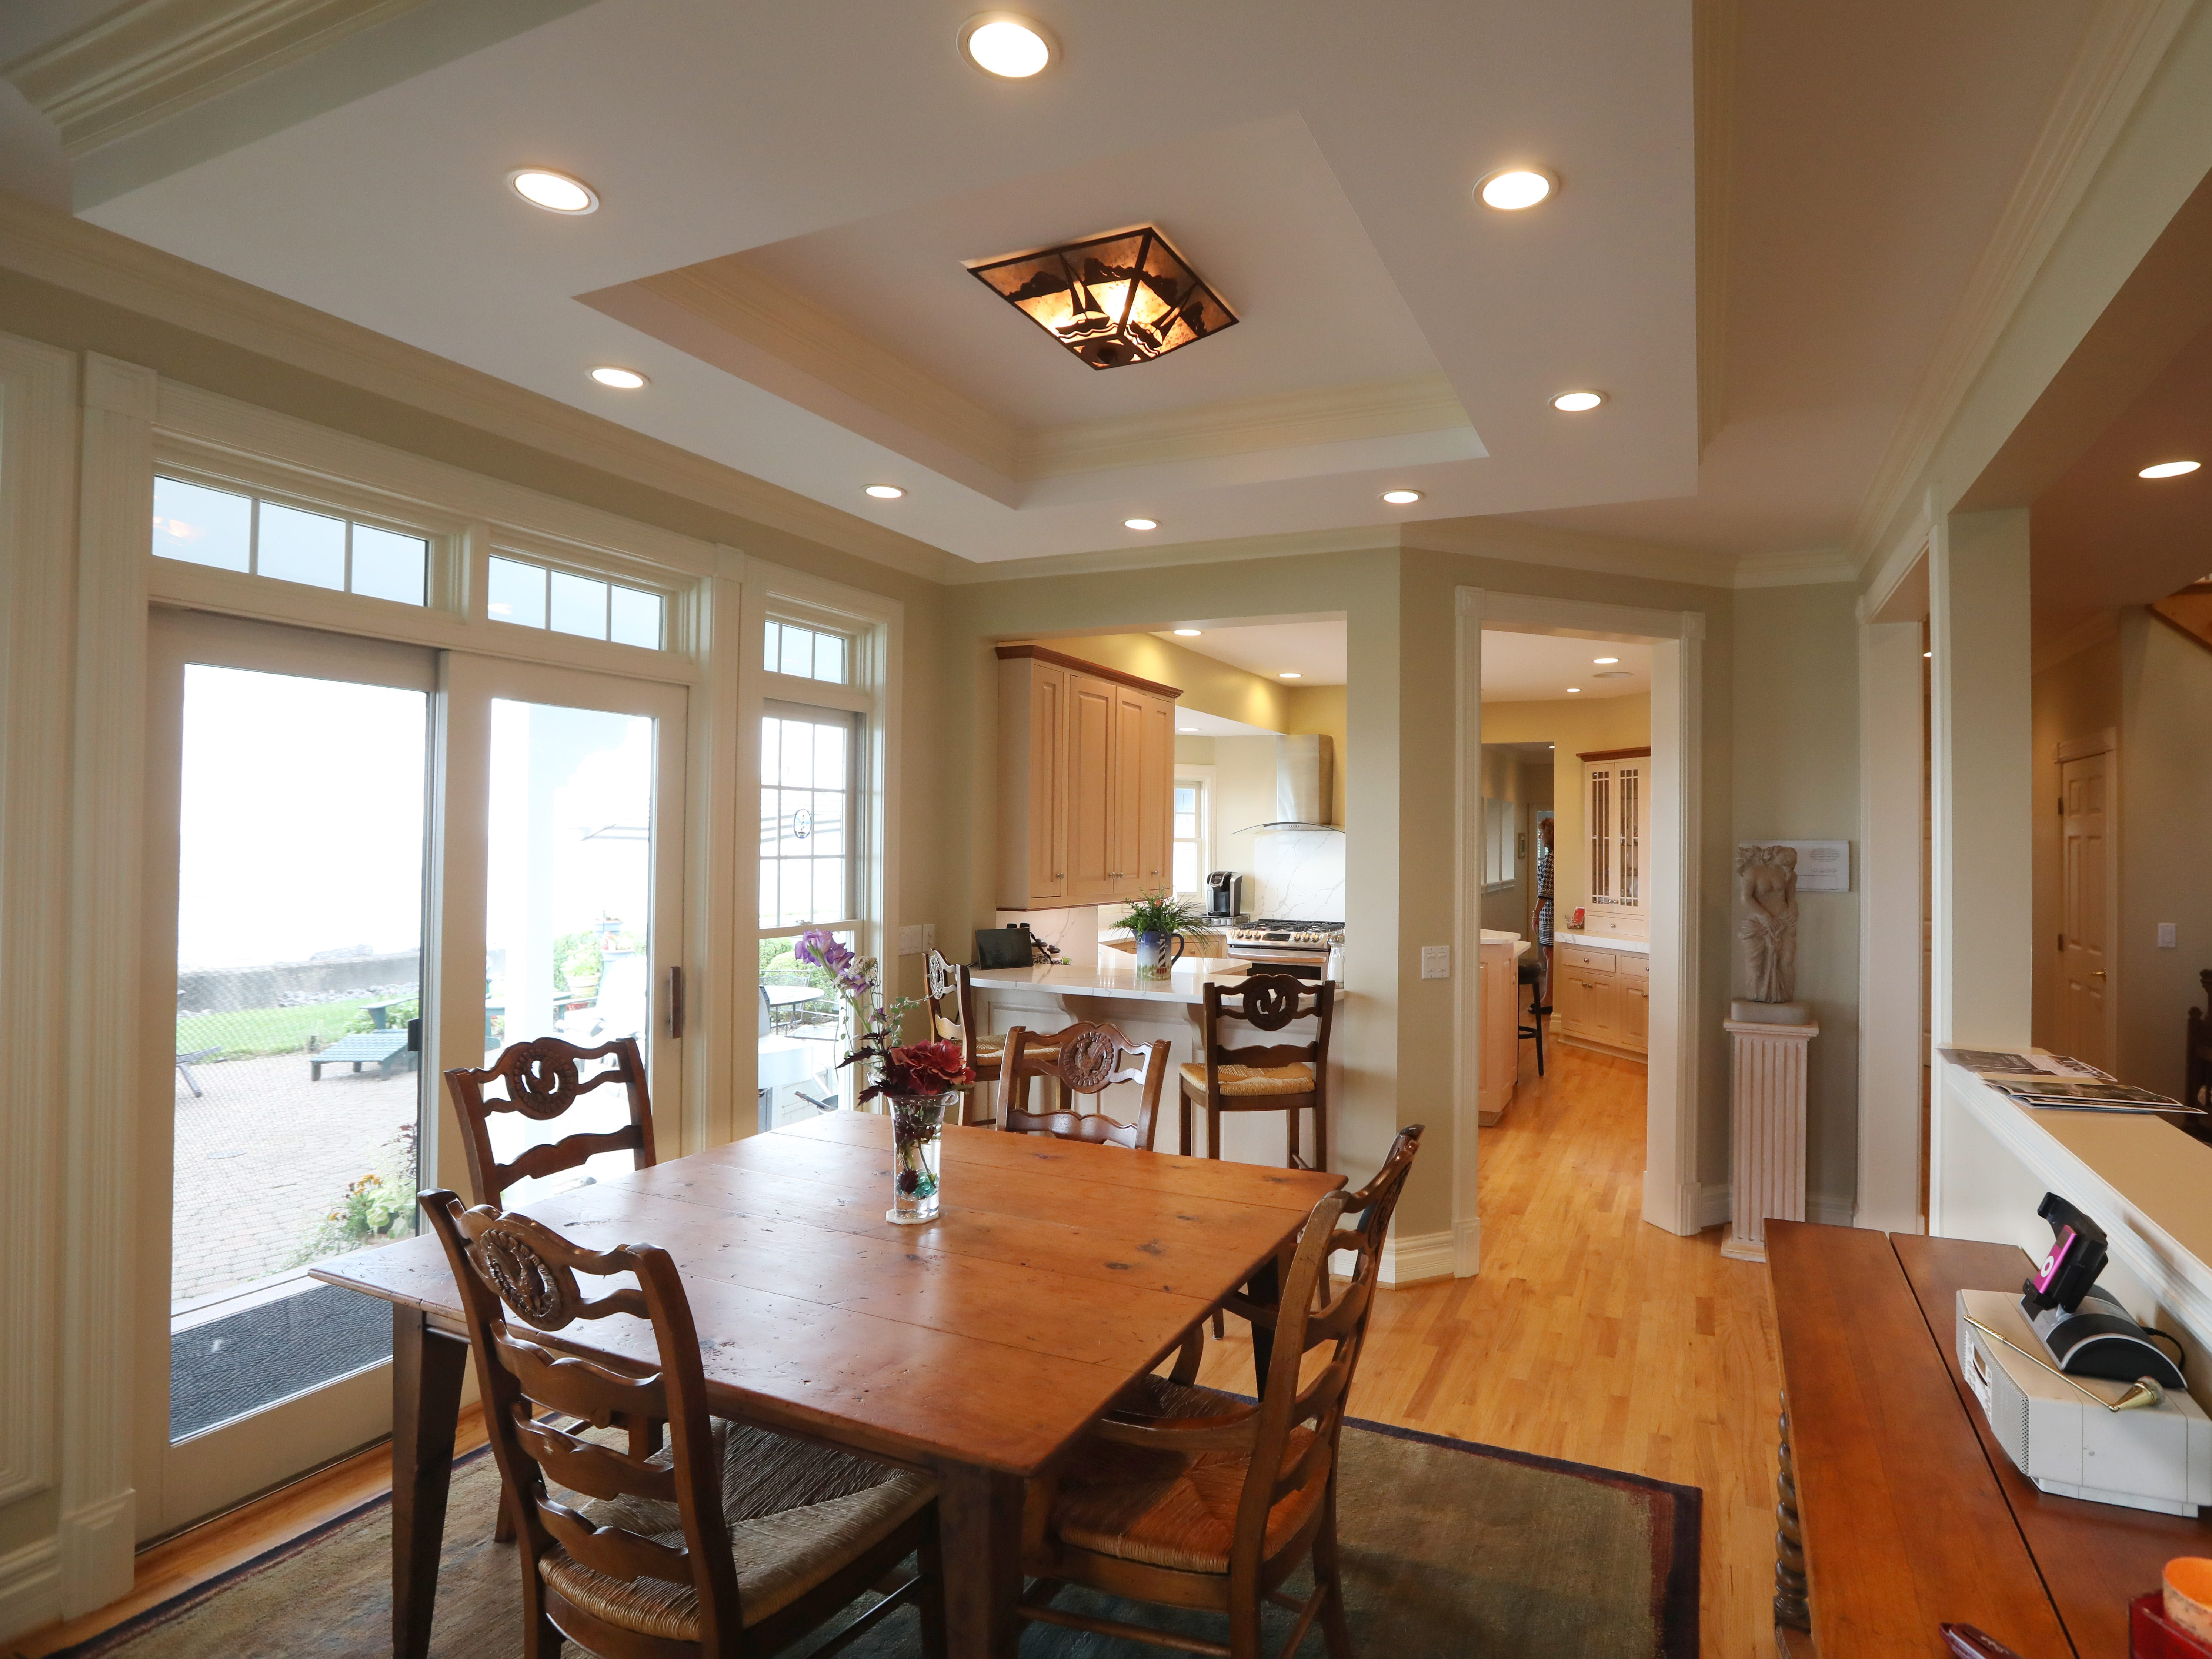 A more casual dining area alongside the kitchen on the first floor.  The house features 12 total rooms, adding up to 4,557 square feet.